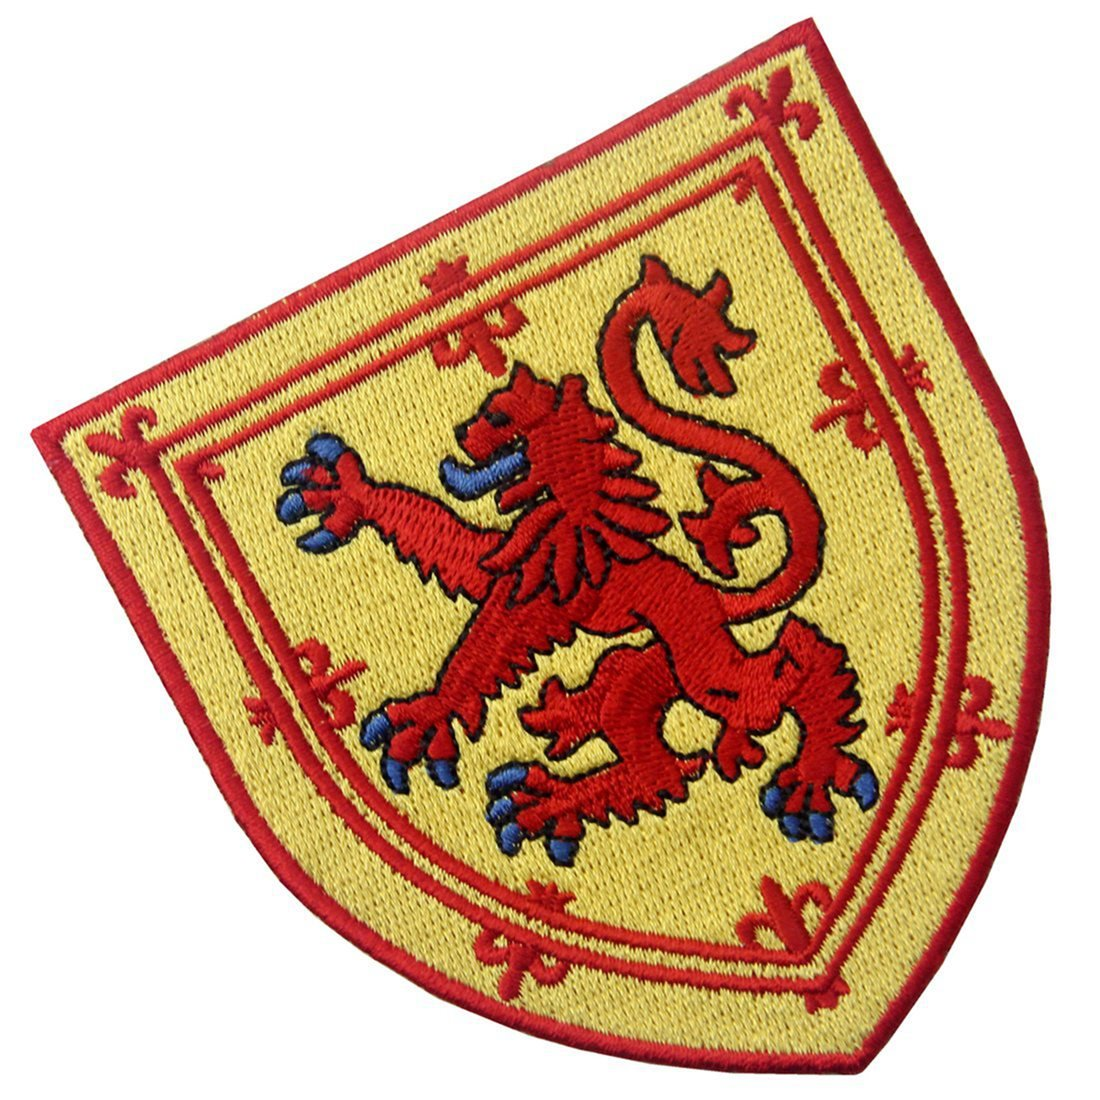 Scotland Coat of Arms Embroidered Emblem Cross Lion Shield Iron On Sew On Patch